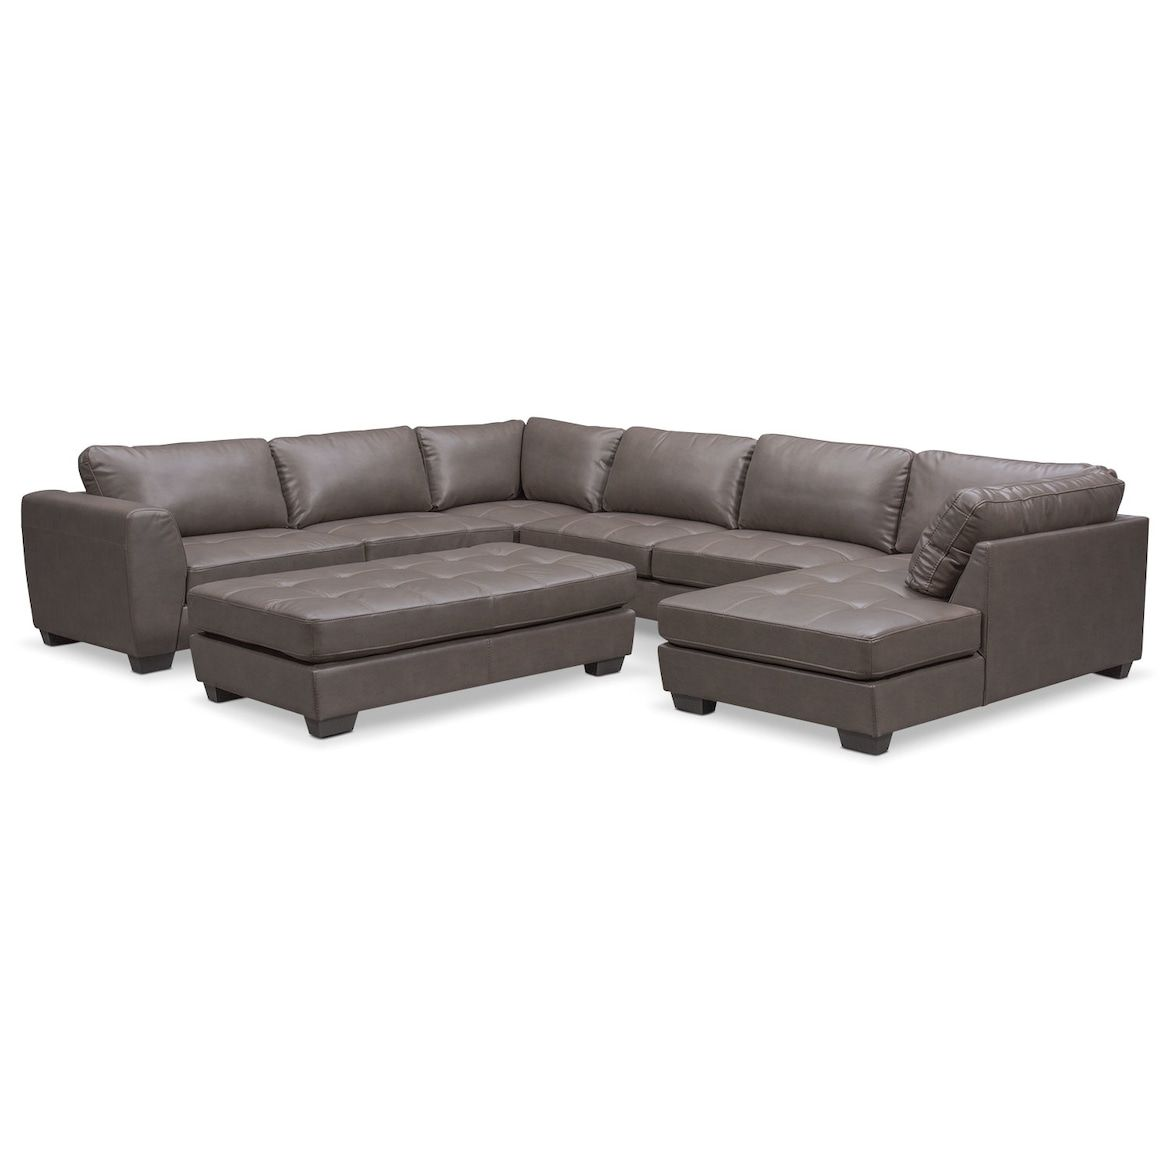 Santana 4 Piece Sectional With Chaise Furniture Grey Leather